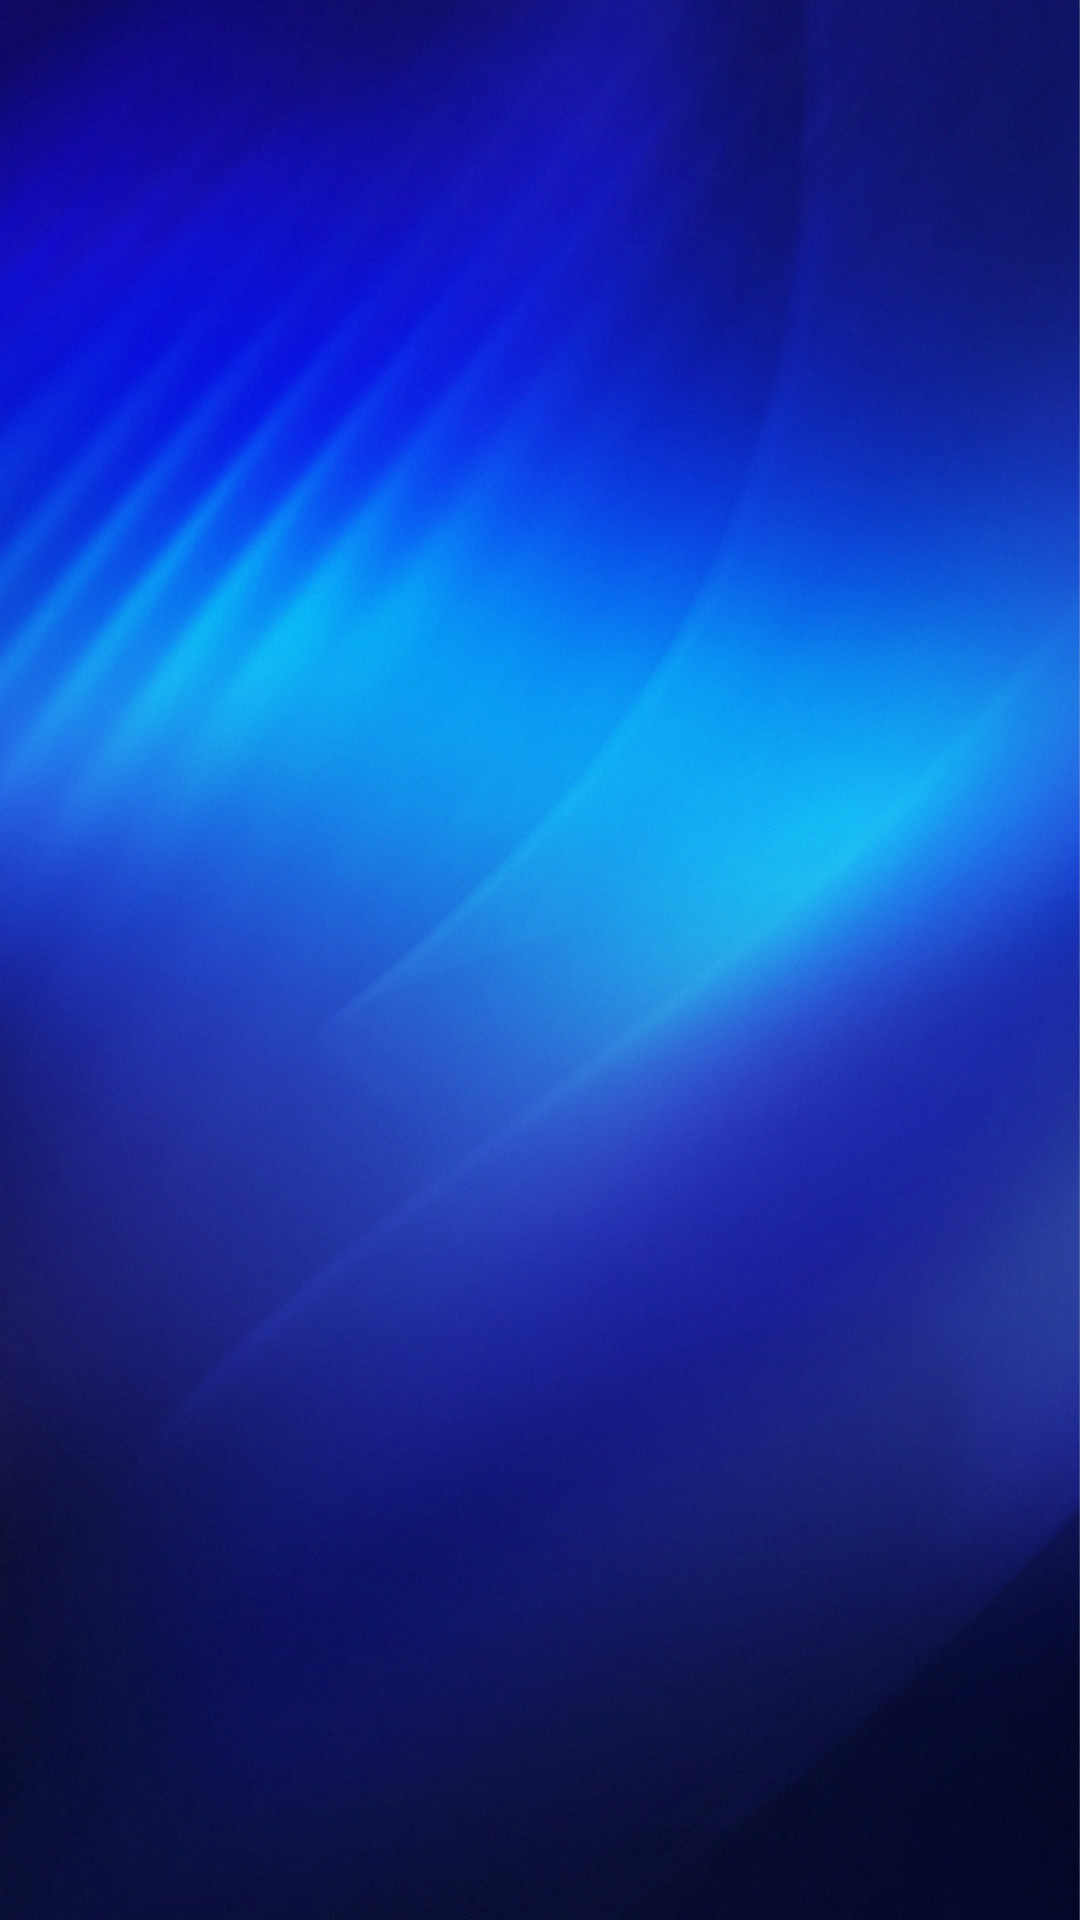 Abstract Blue Light Wallpaper Abstract Other (76 Wallpapers) – HD Wallpapers